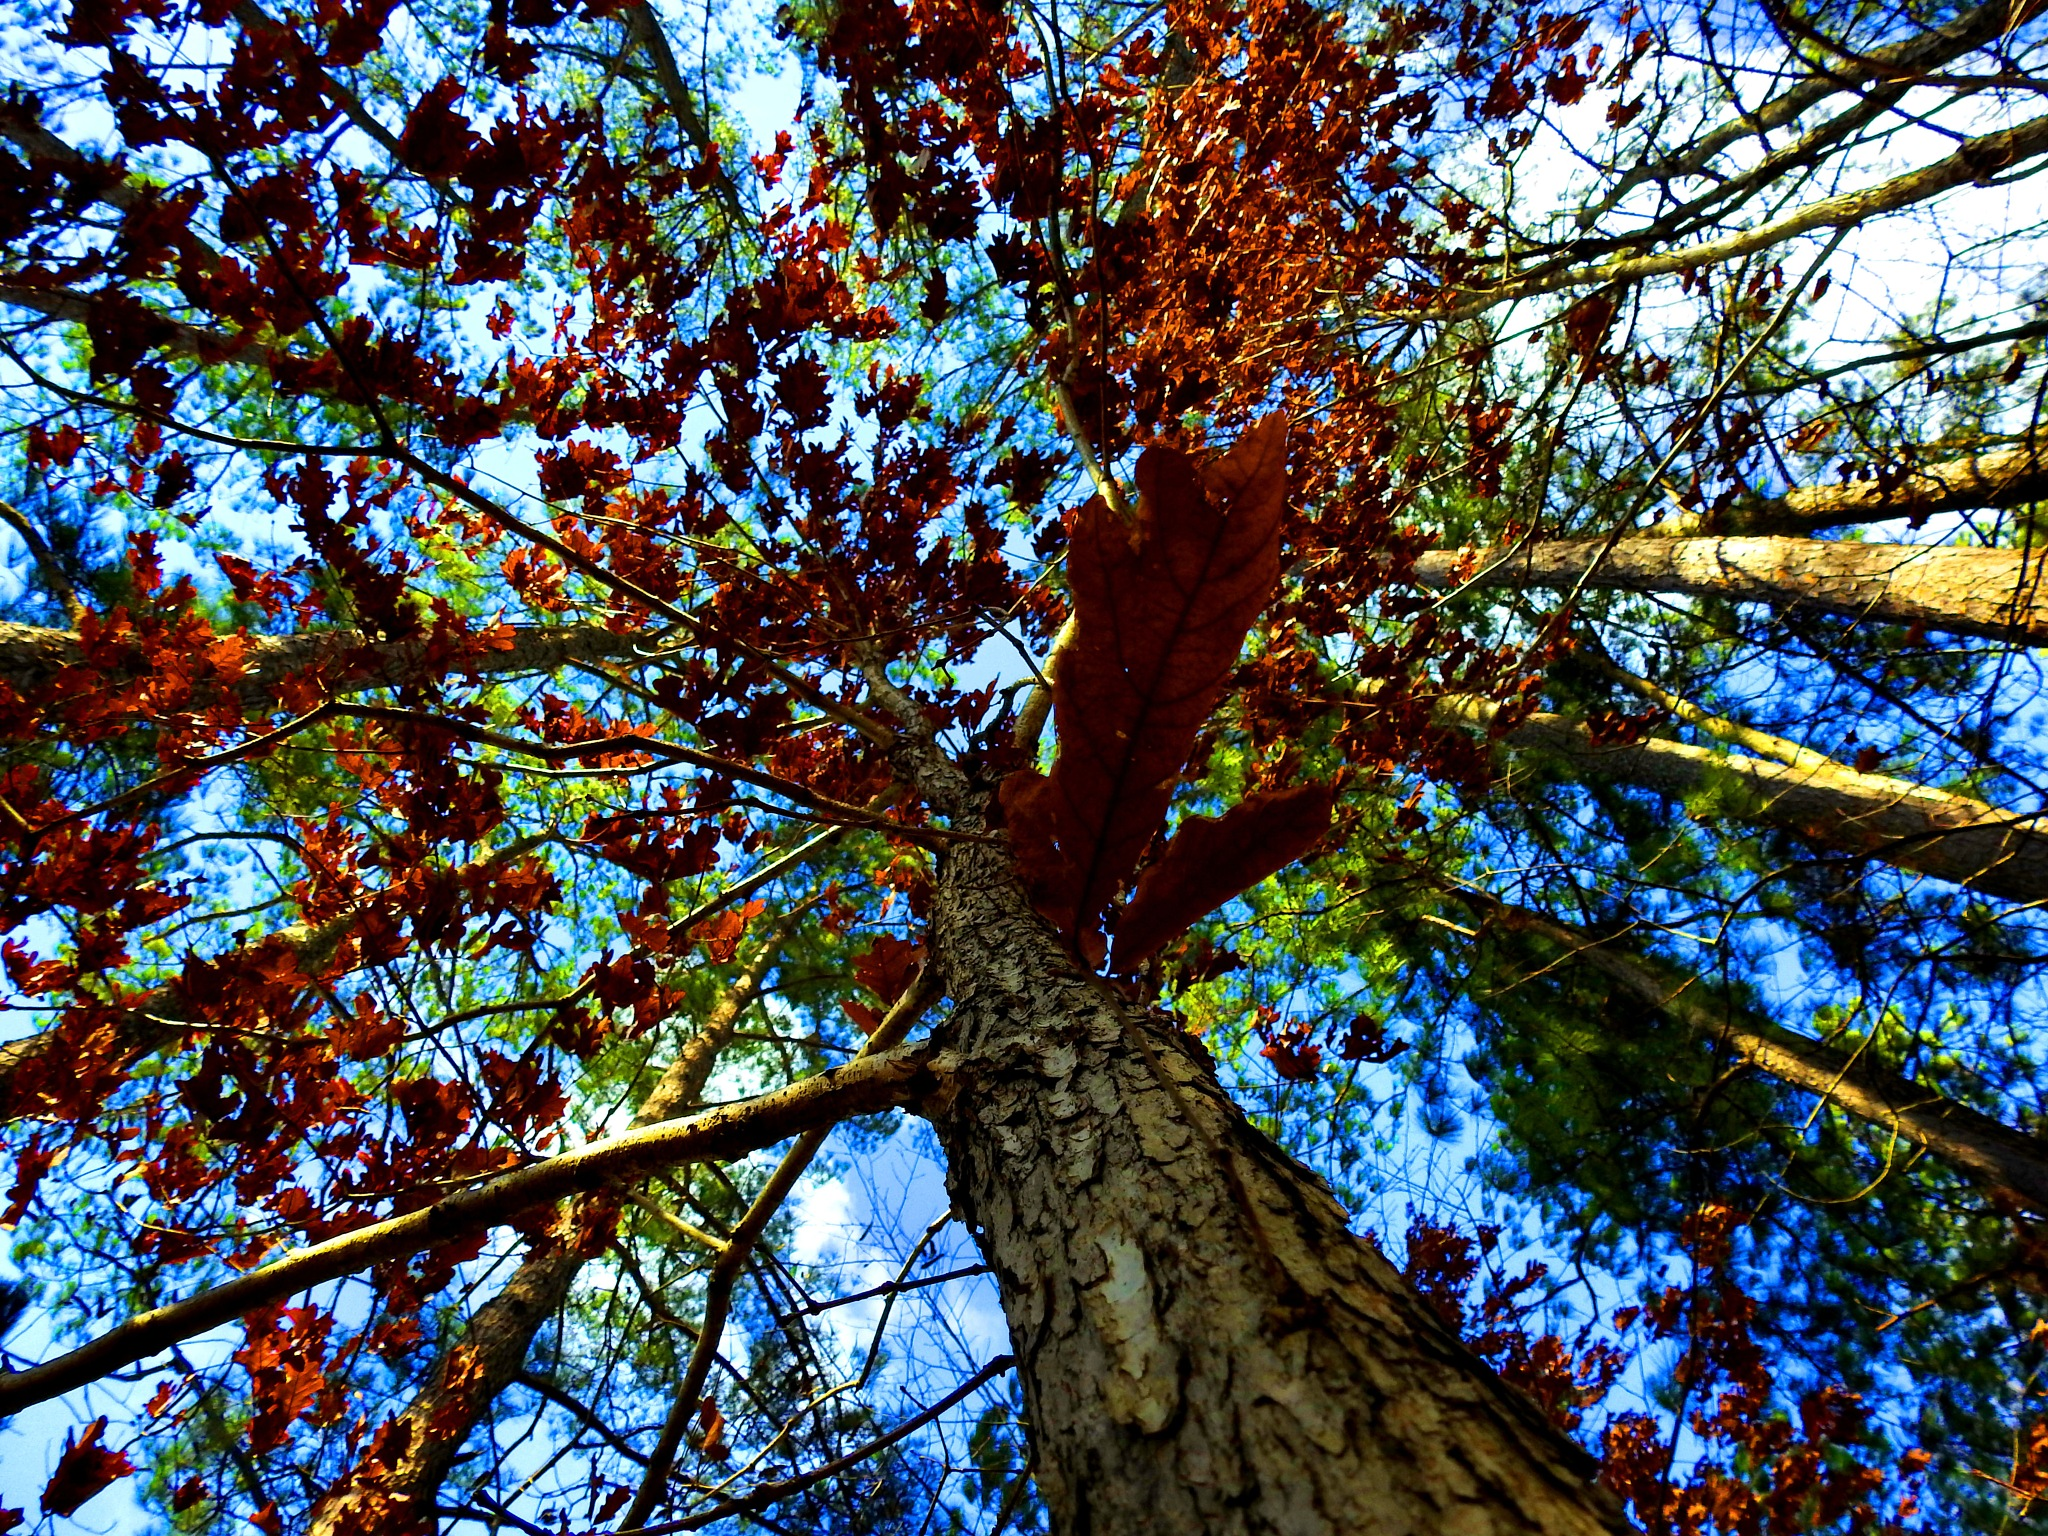 Oaks and Pines by Patty Stockton